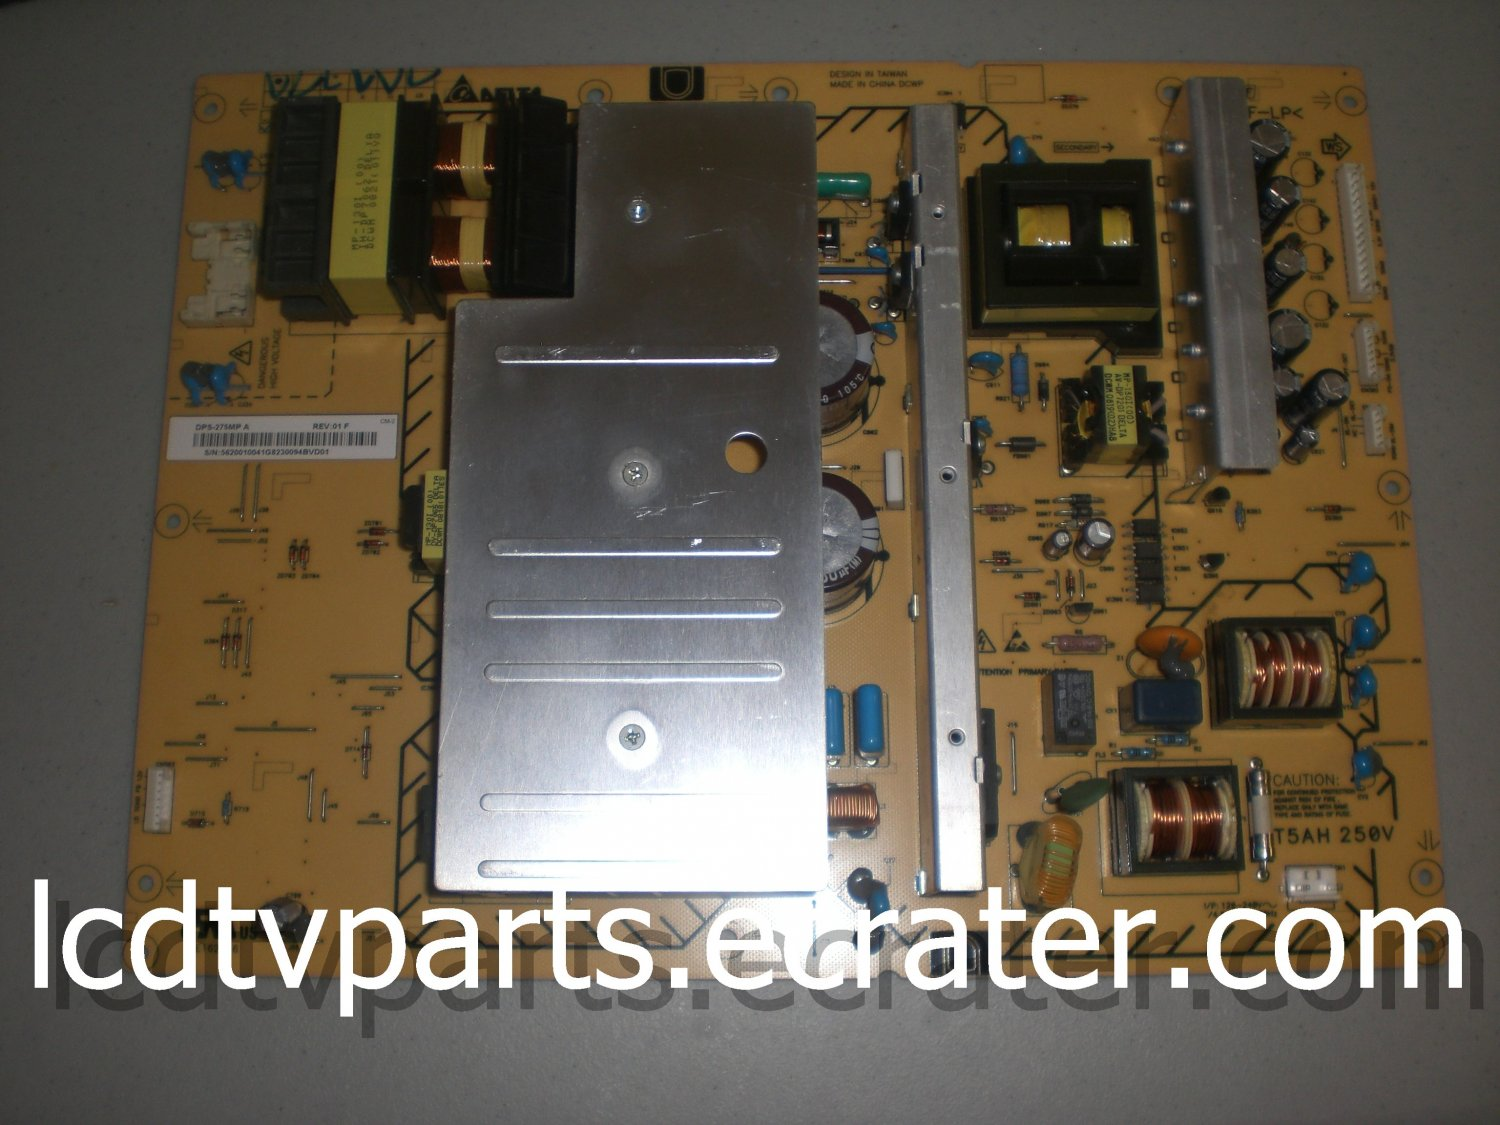 1-857-093-21, DPS-275MP, Power Supply for SONY KDL-46S4100